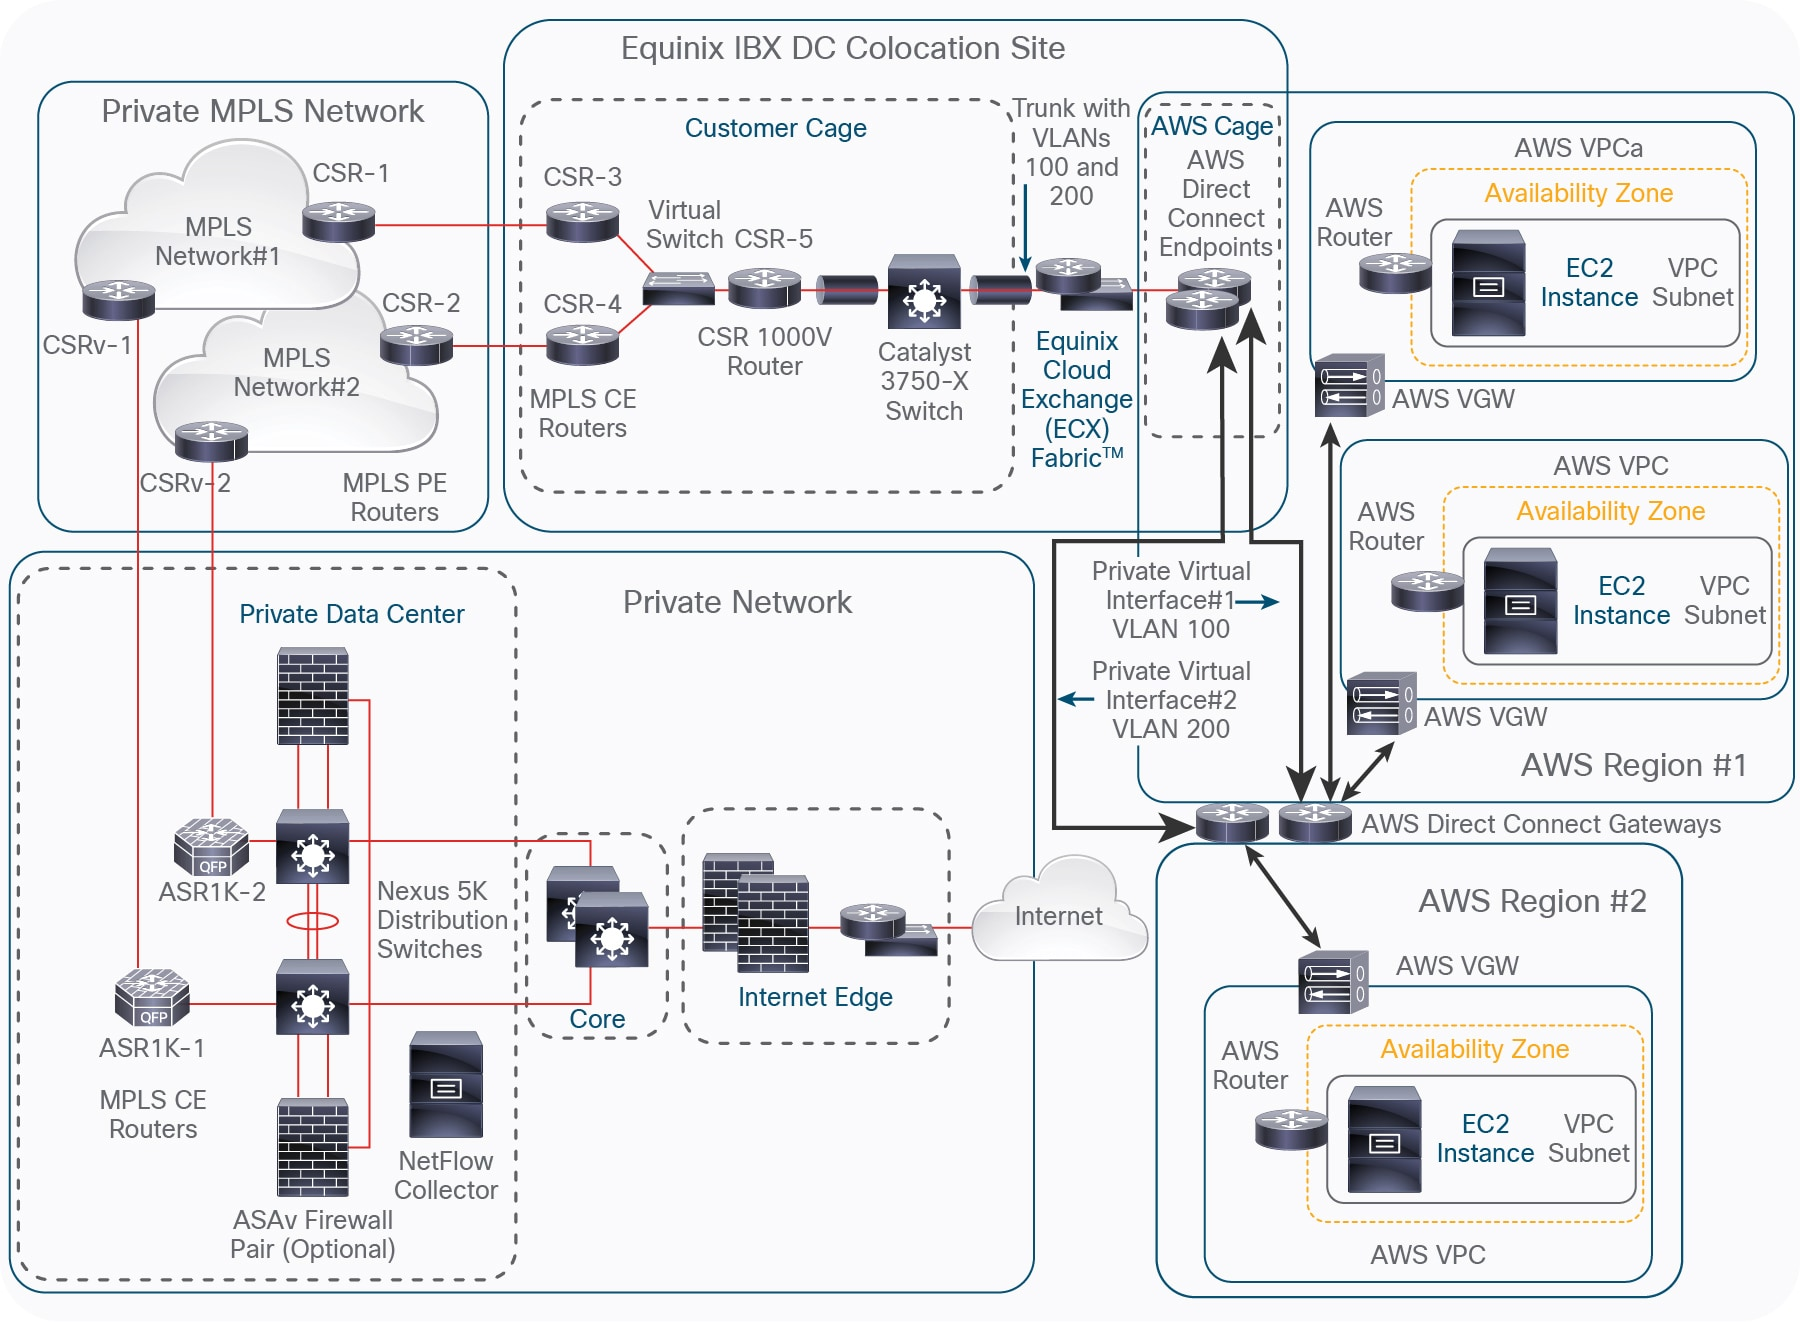 Cisco Multicloud Portfolio: Deployment Guide for Private Network to